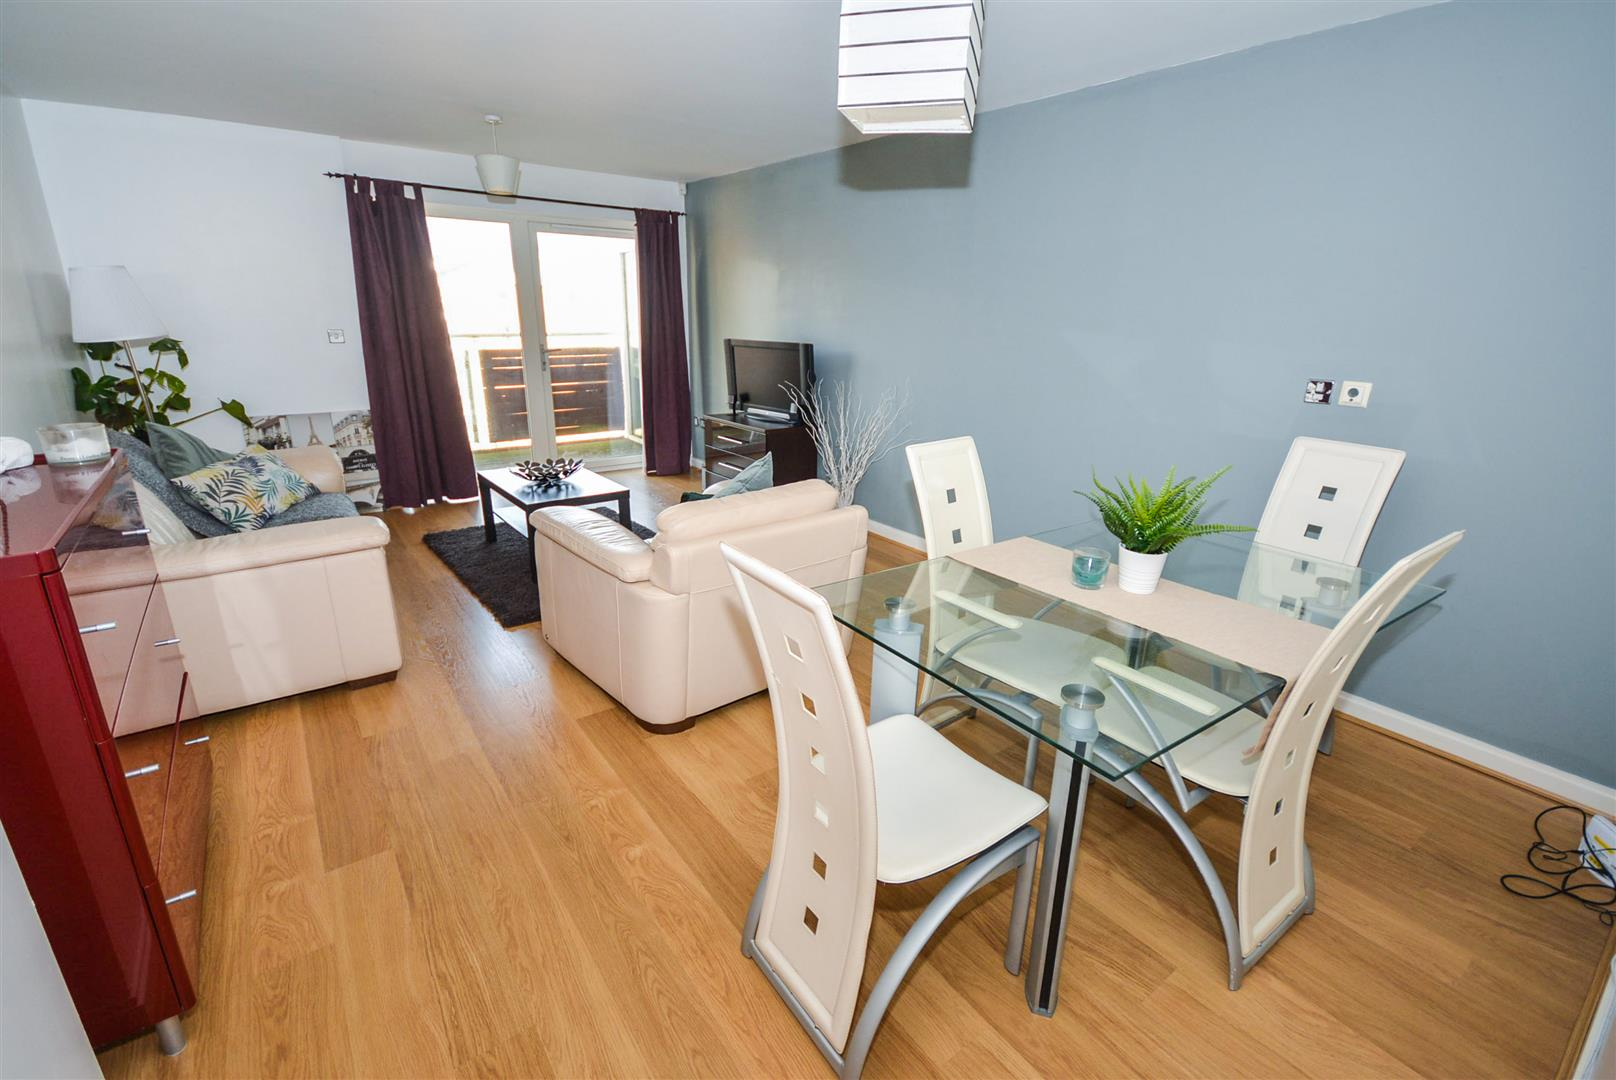 1 bed apartment for sale in Chandlery Way, Cardiff 3